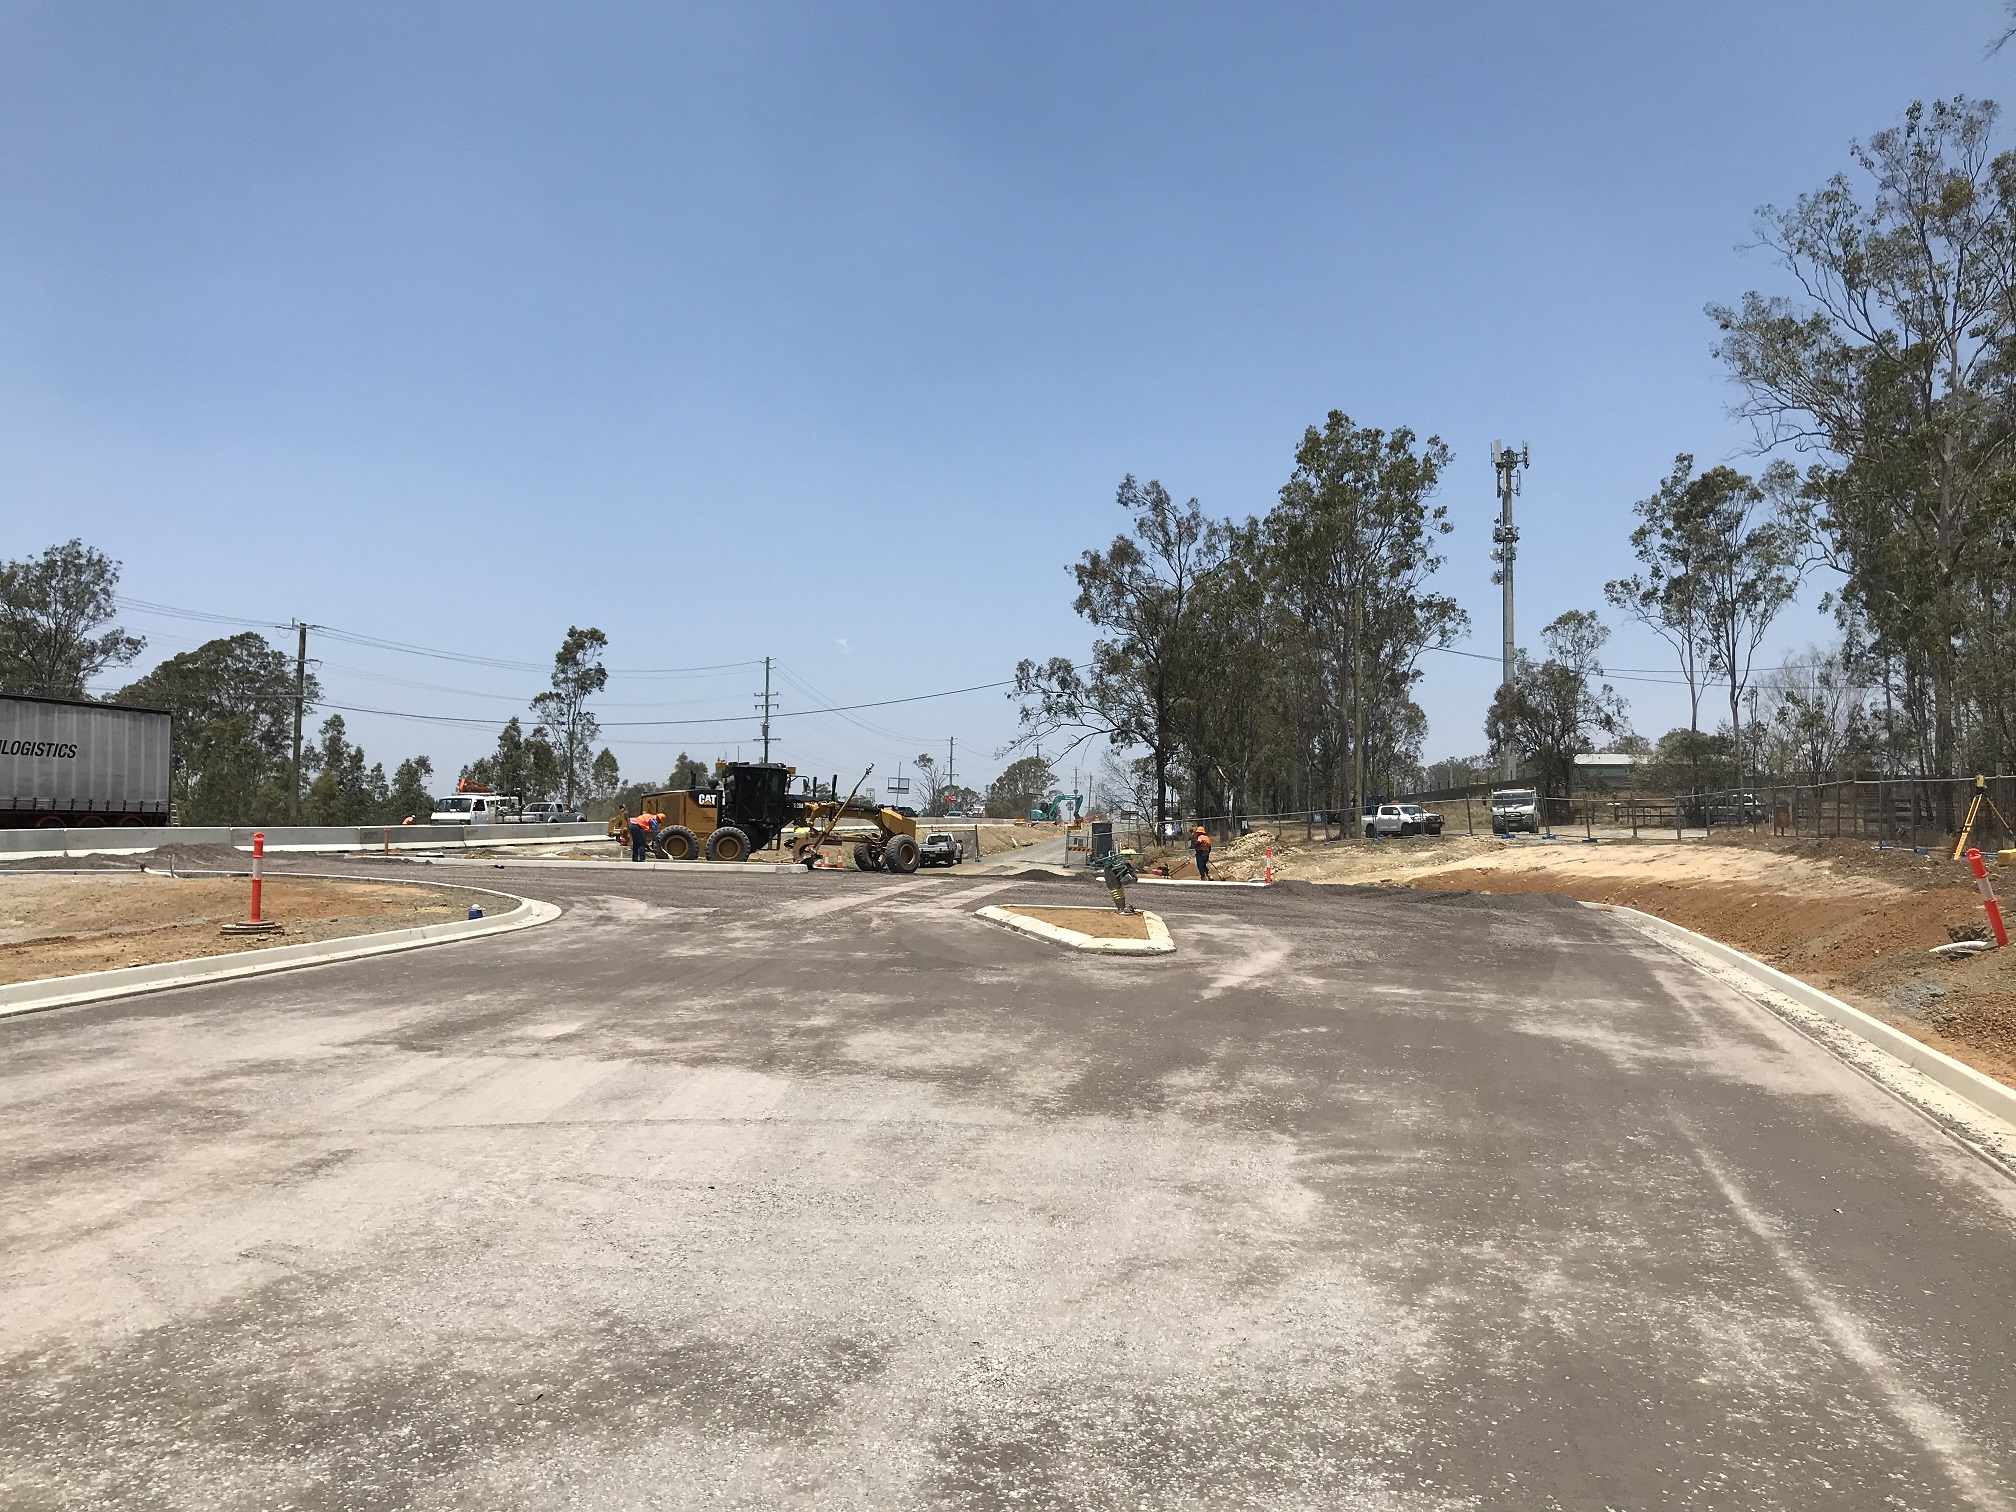 The Crest Road intersection with the Mount Lindesay Highway was reconstructed as part of the project